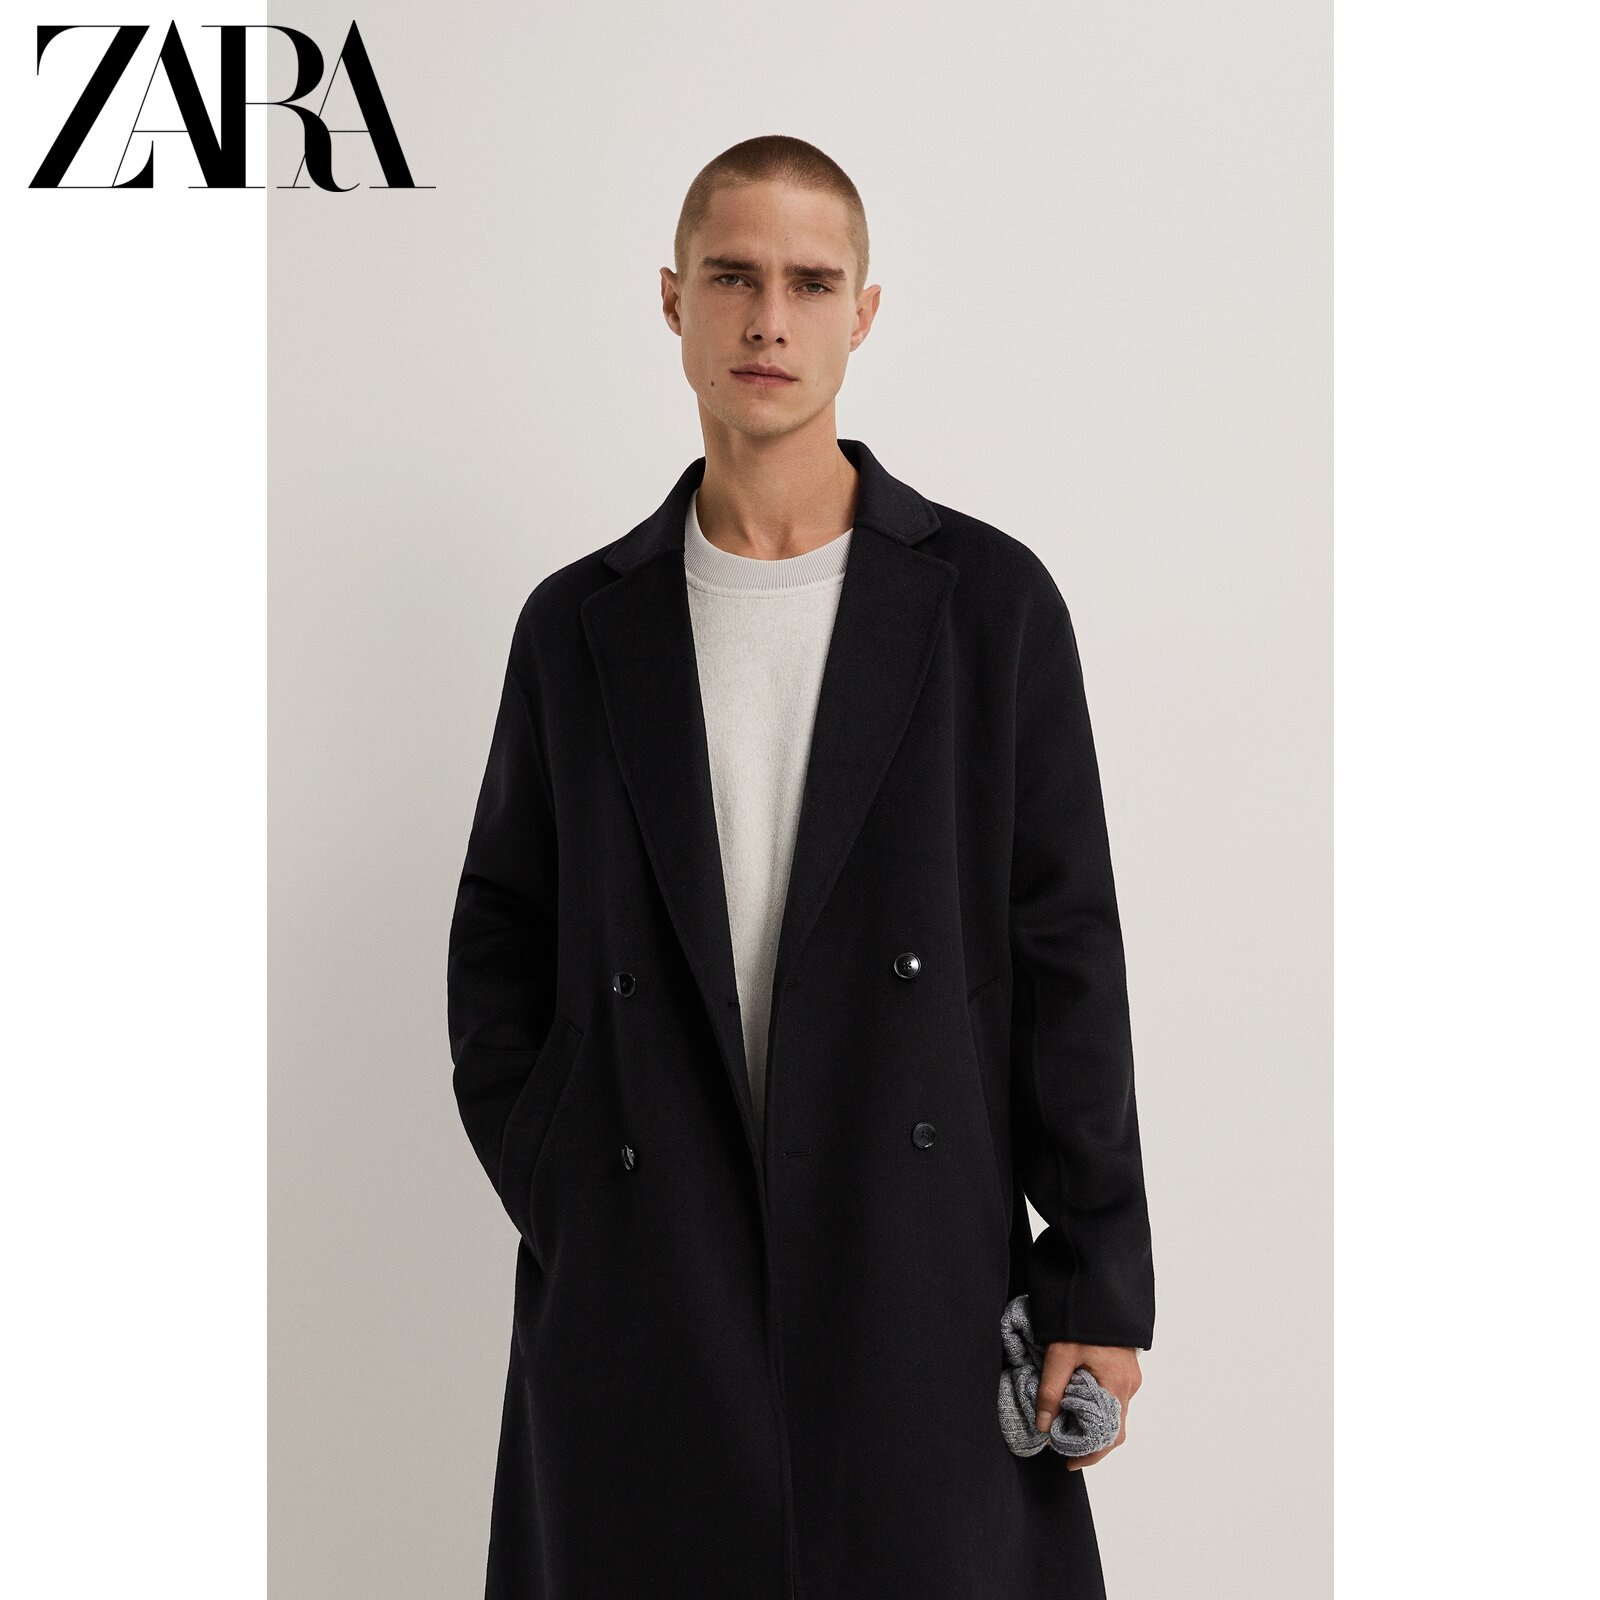 Zara new men's autumn and winter wool texture double-breasted coat coat 09621600800